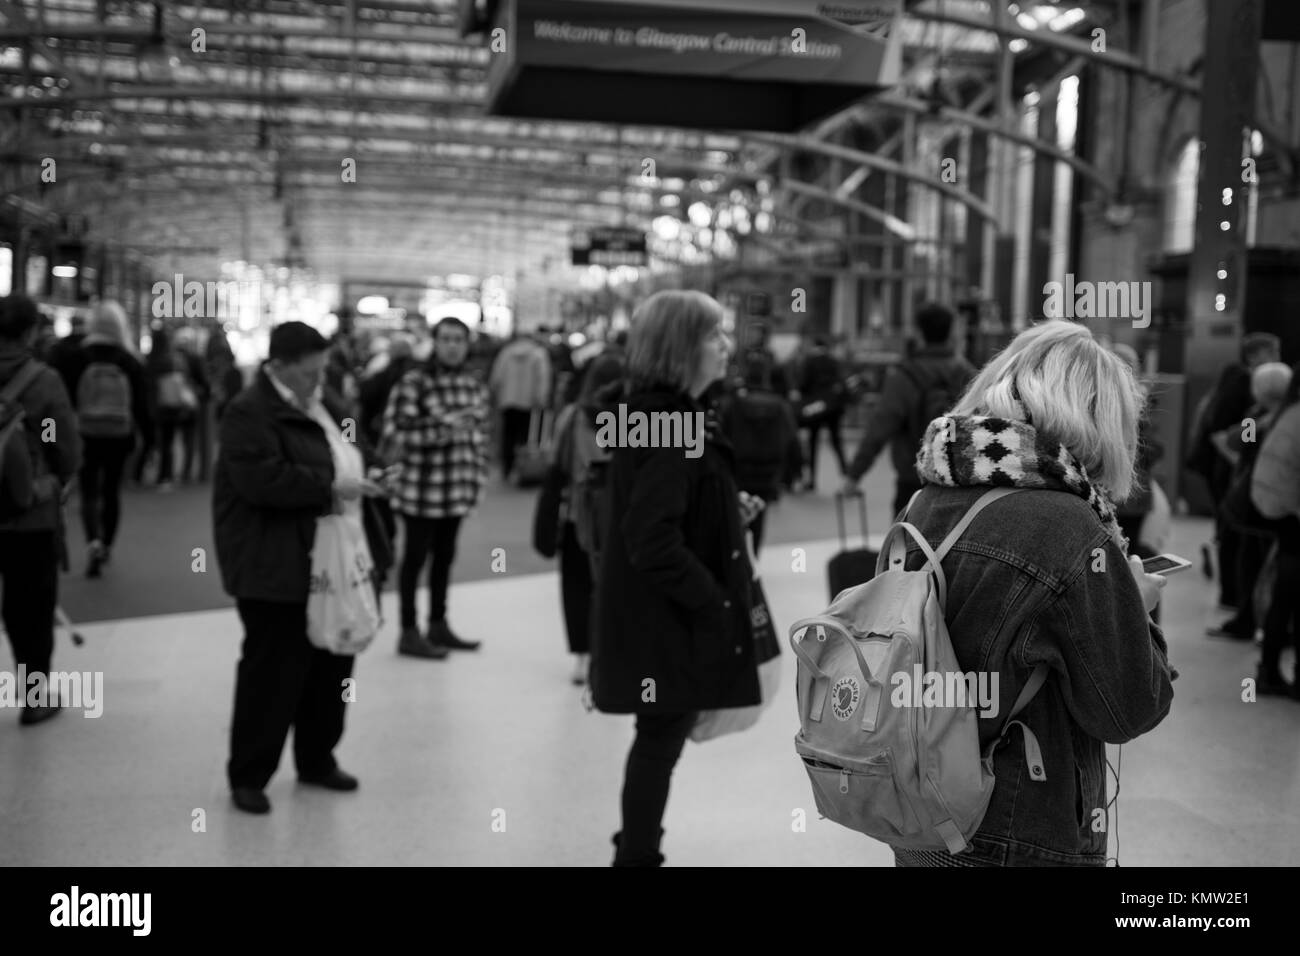 Glasgow Central Rush Hour - Stock Image